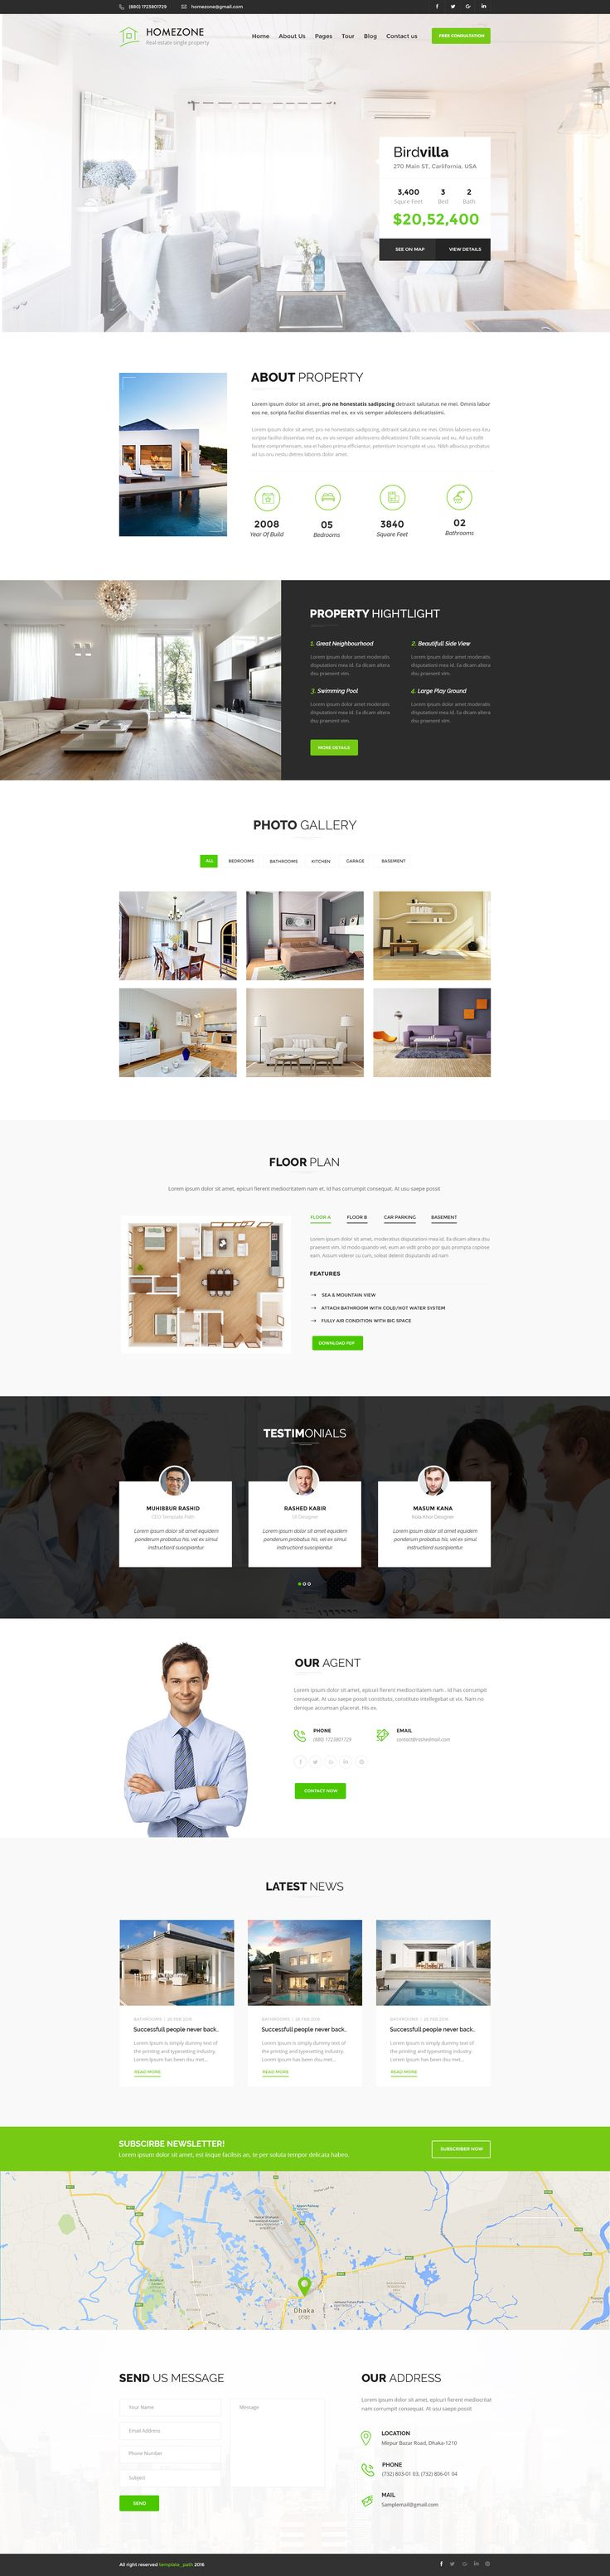 Homezone is a professional, modern crafted PSD template | Download : https://themeforest.net/item/homezone-single-property-real-estate-psd-template/16722027?ref=sinzo